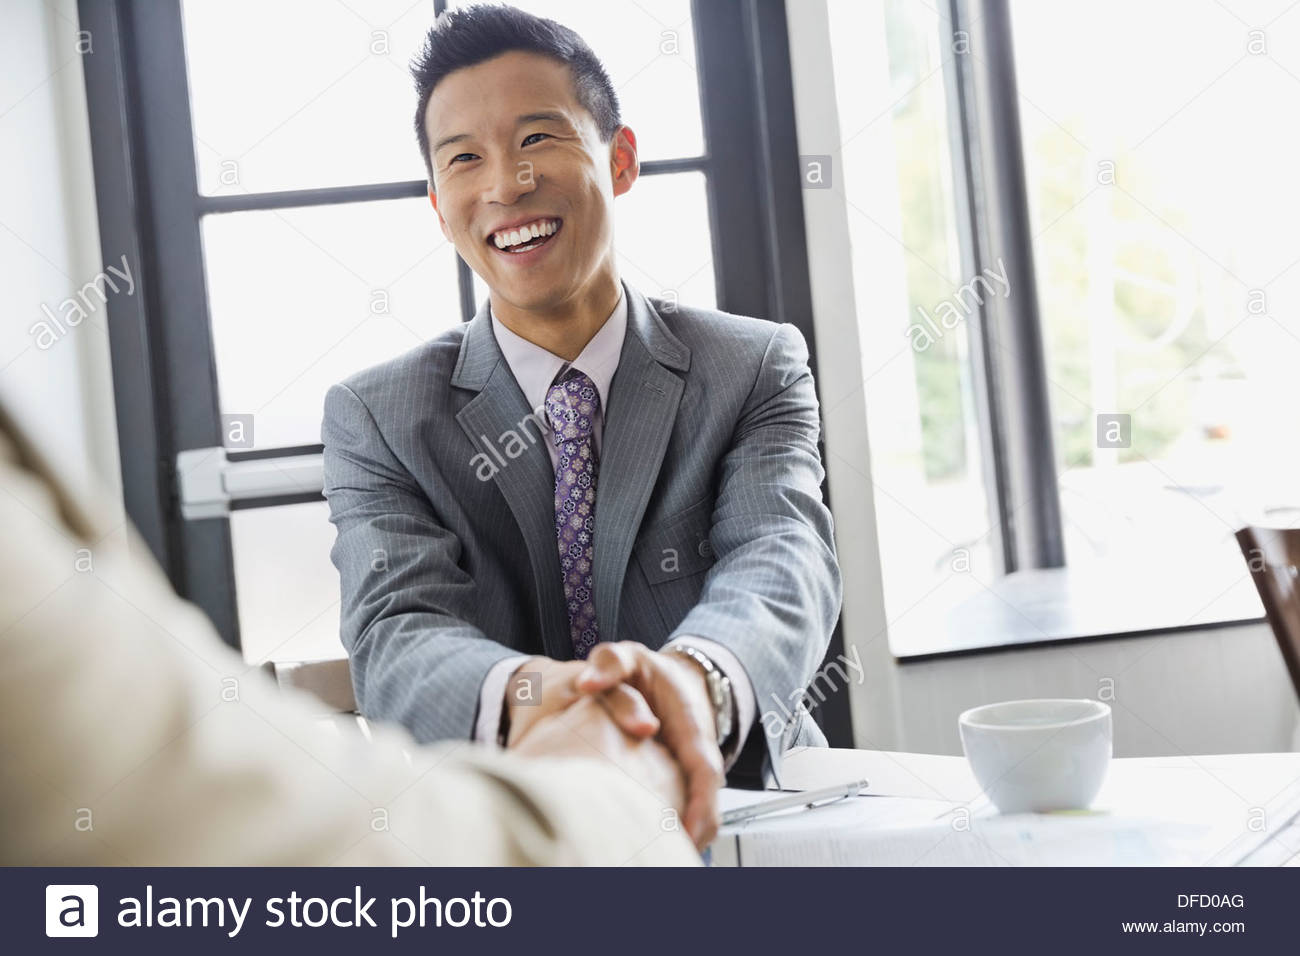 Businessman shaking hands with partner in restaurant - Stock Image